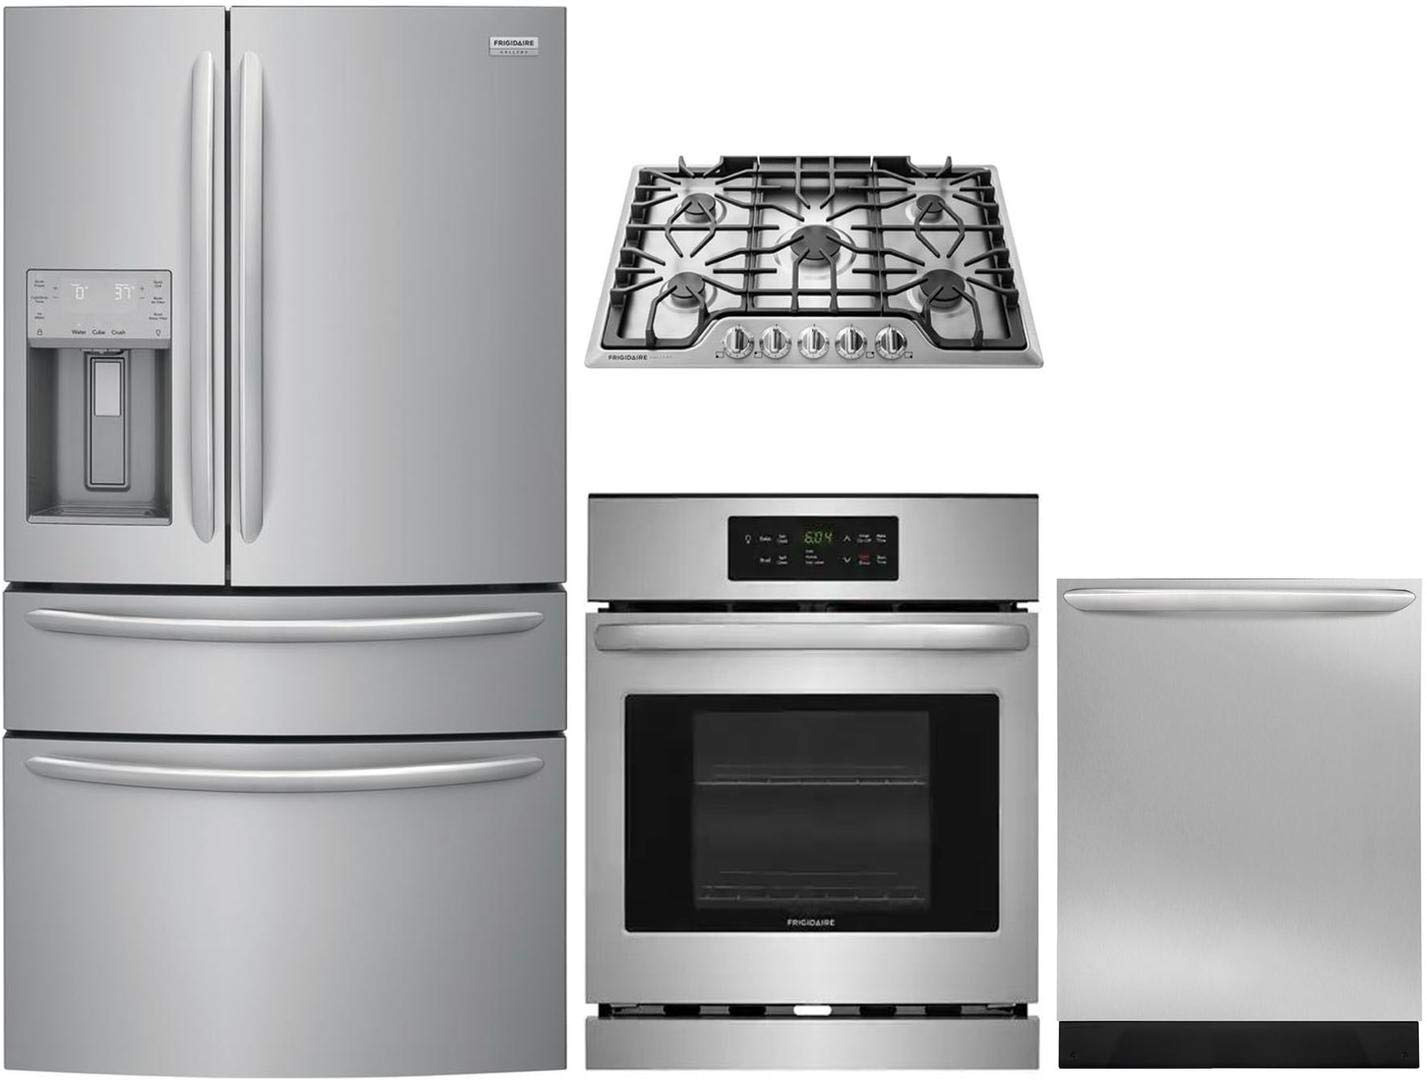 """Frigidaire 4 Piece Kitchen Appliance Package FG4H2272UF 36"""" French Door Refrigerator,FFEW2426US 24"""" Electric WallOven,FGGC3047QS 30""""Gas Cooktop, FGID2466QF 24"""" Built In Dishwasher in Stainless Steel"""